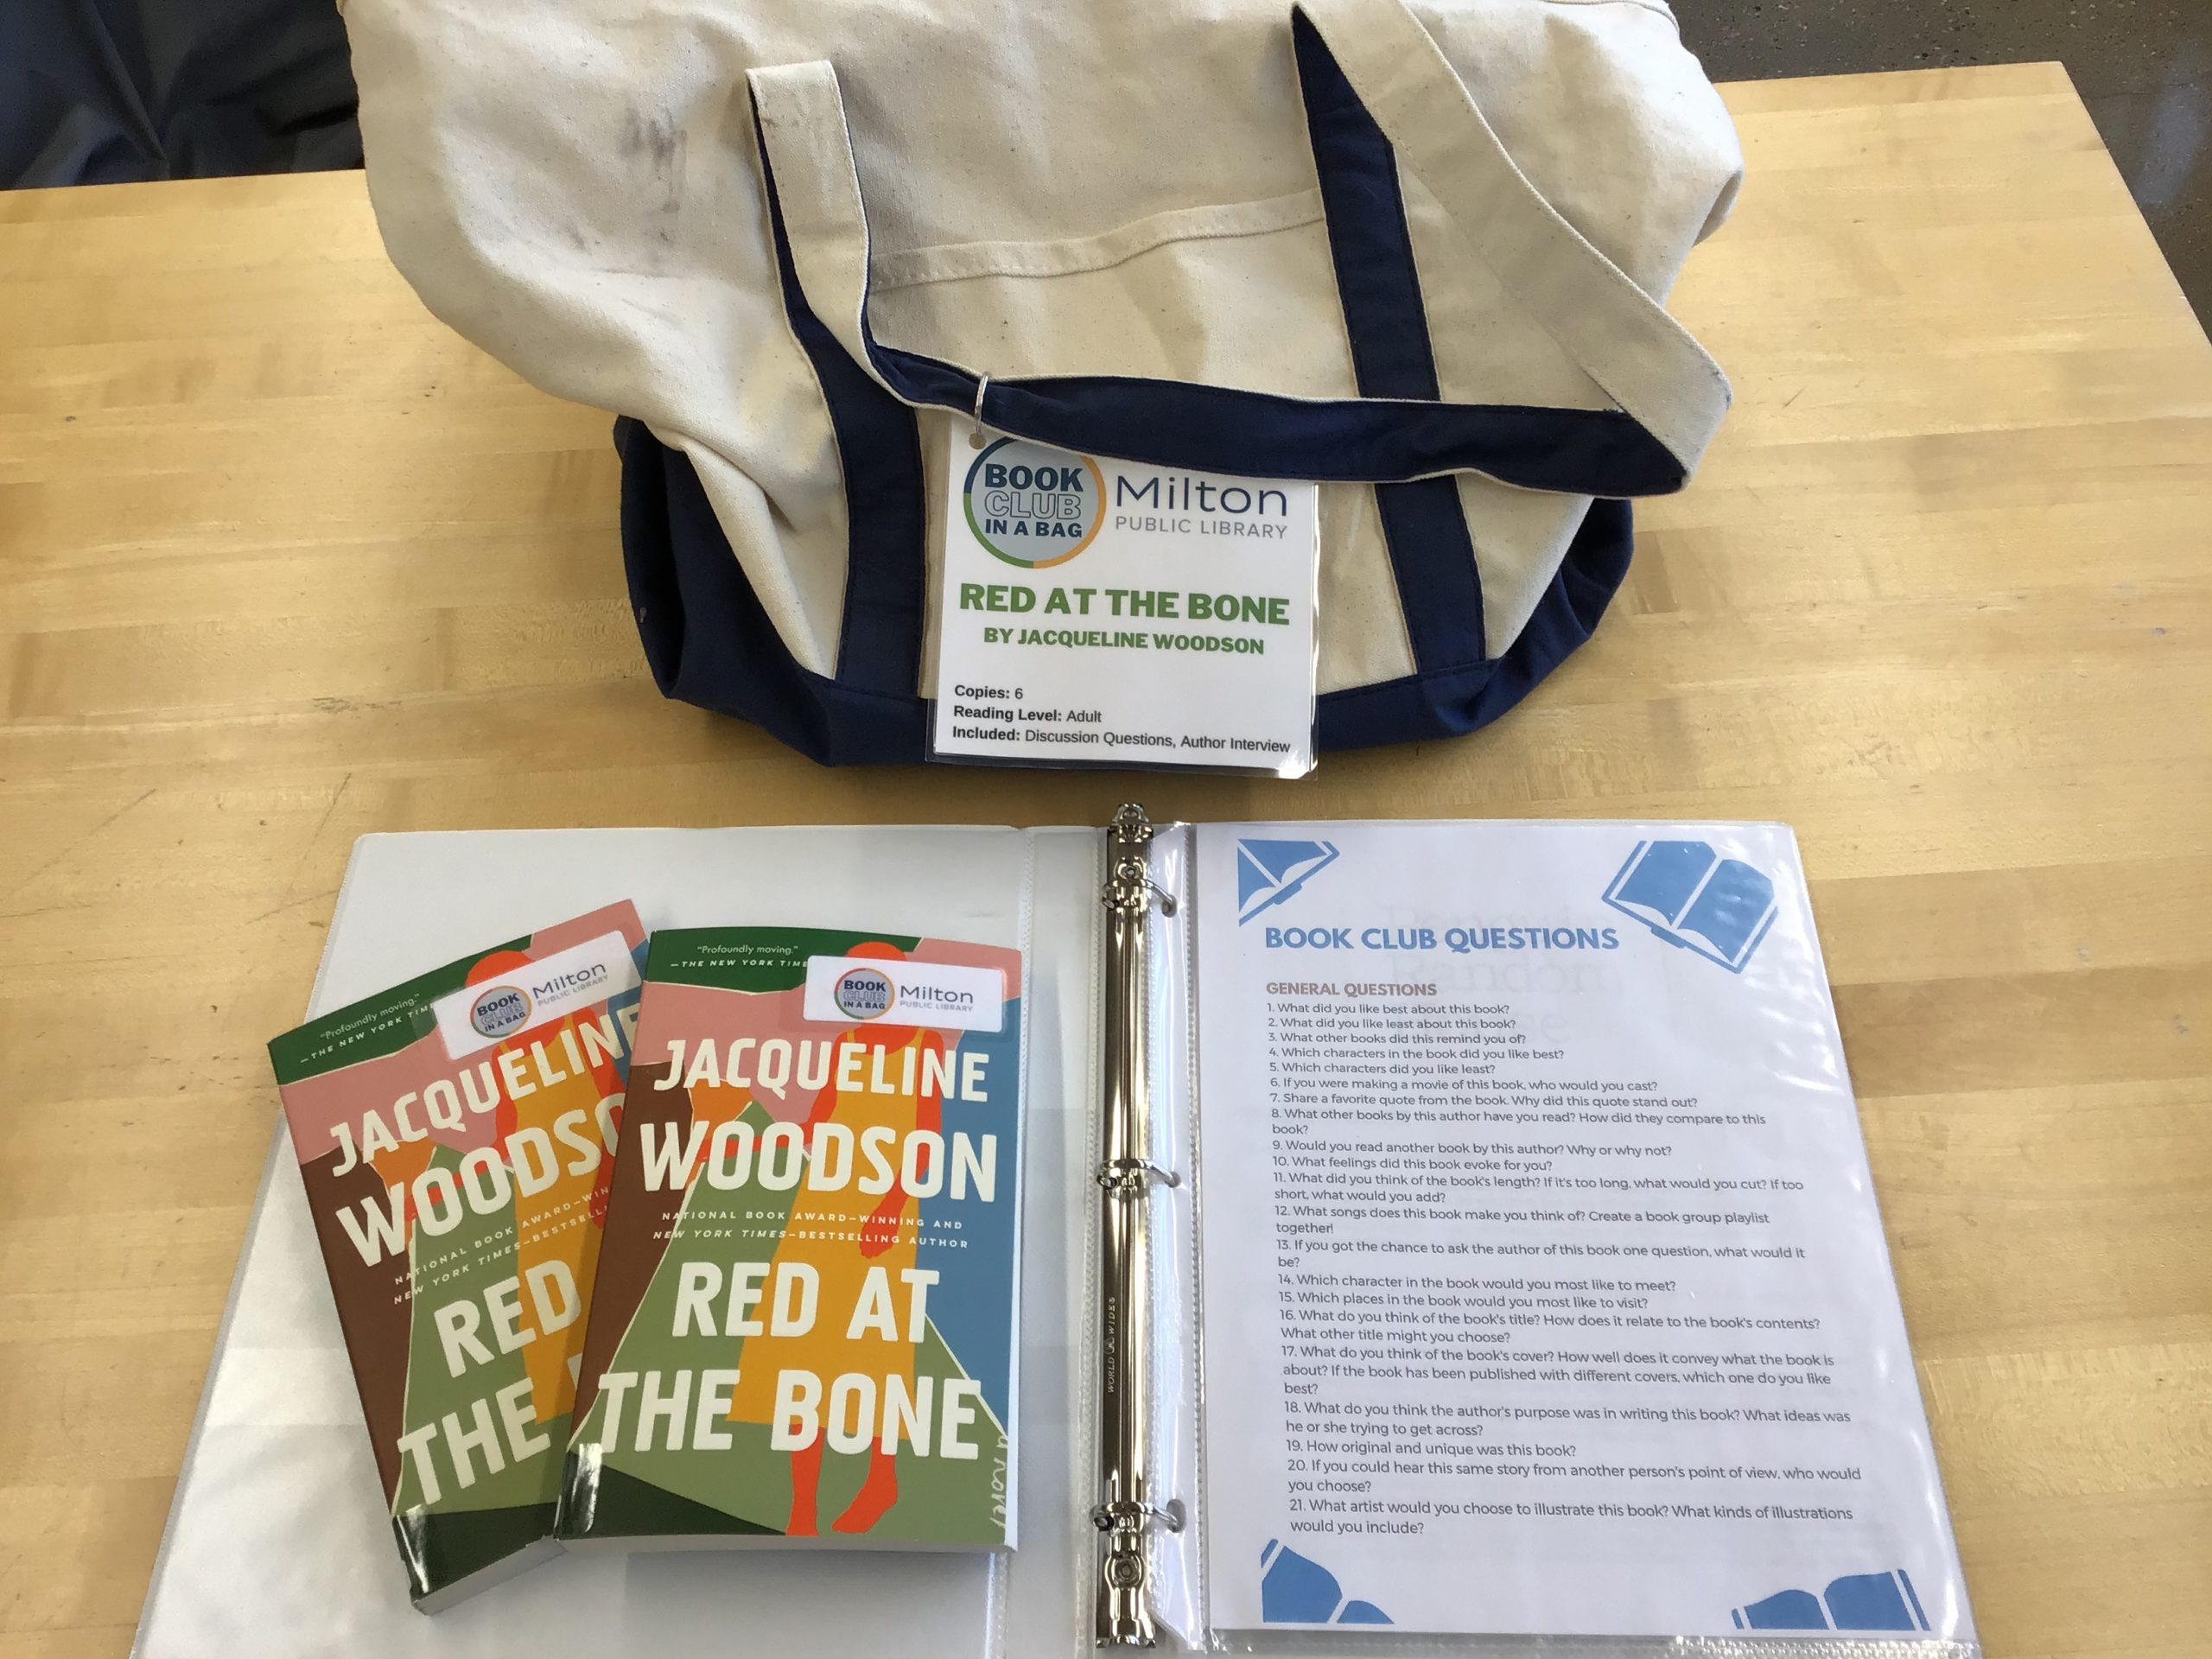 Canvas bag with two copies of Red At the Bone displayed on top of the book club notes.